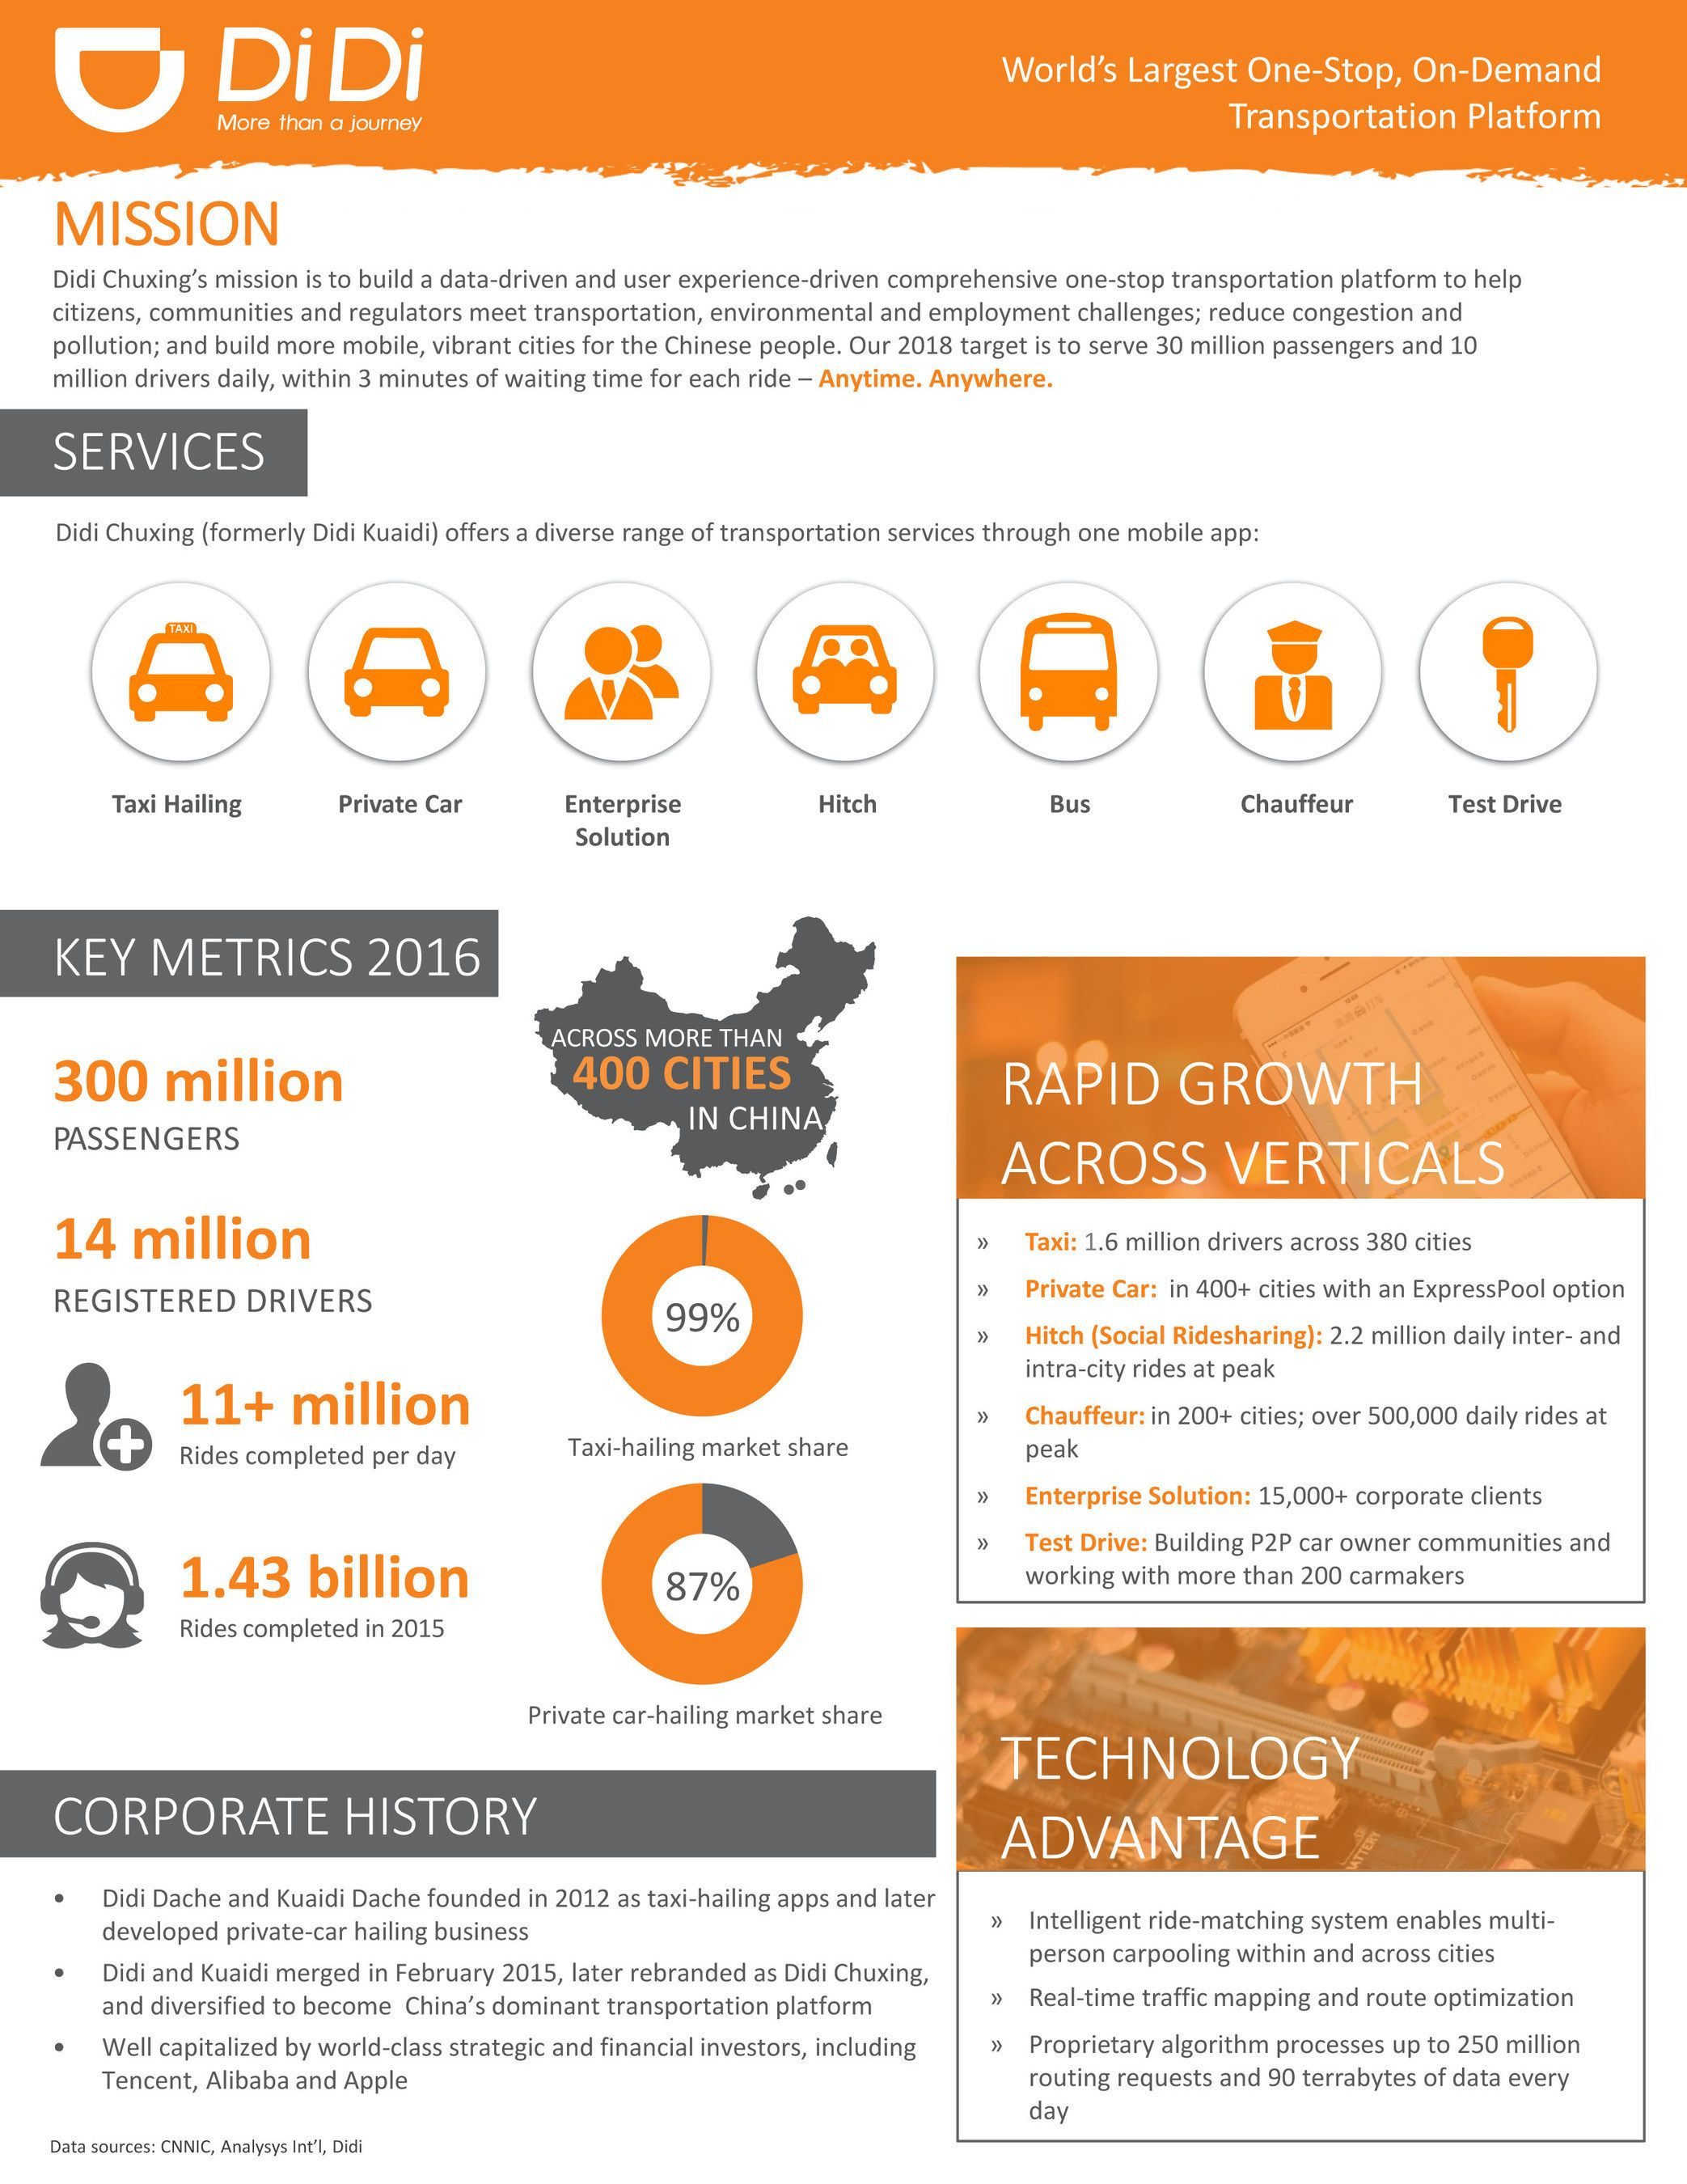 Didi Chuxing Announces Progress In Current Fundraising Round One Pager Design Brochure Design Template Design Print Layout